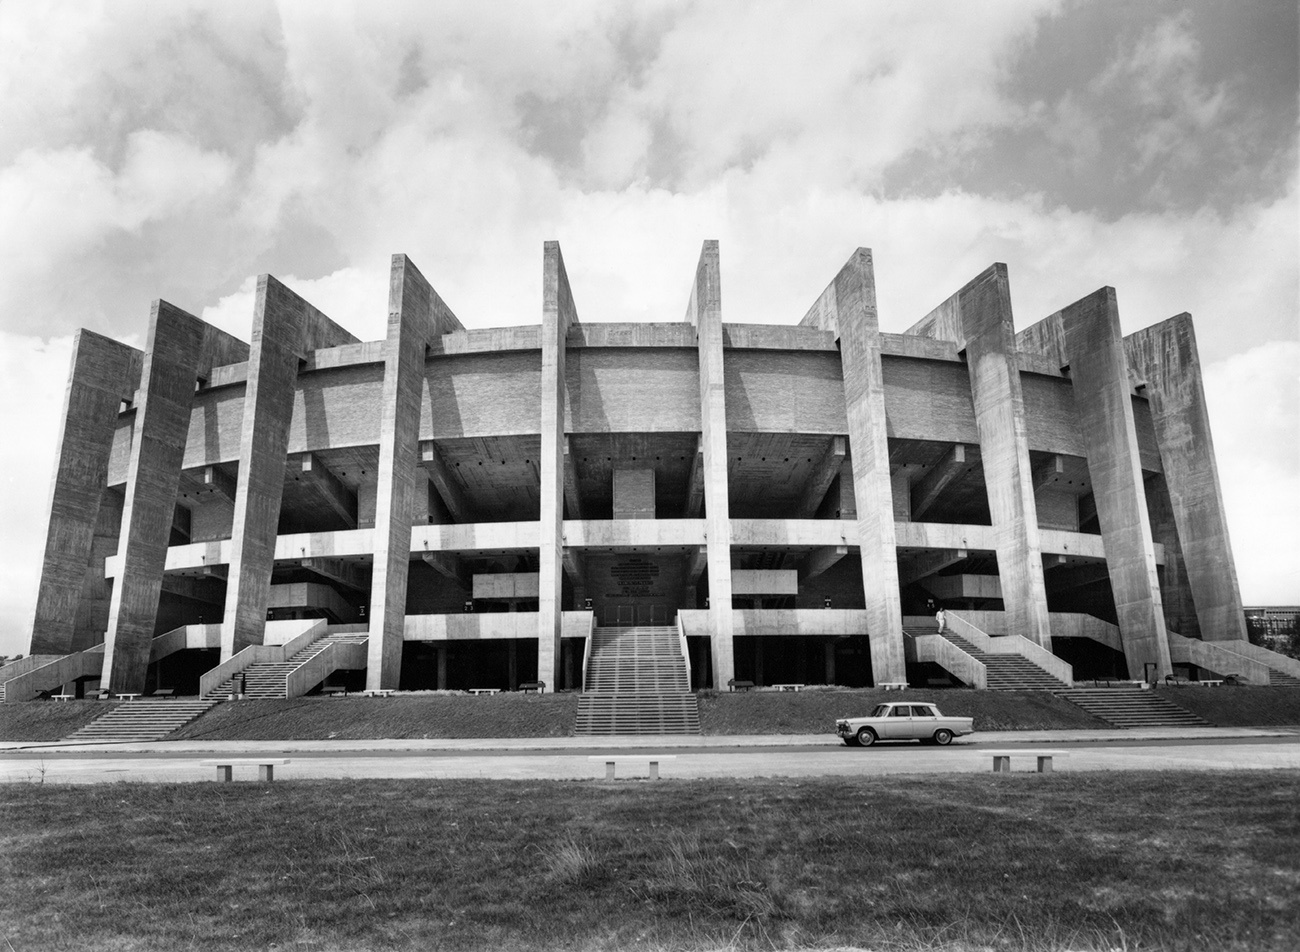 Black and white photo of a large concrete structure that looks like a giant, ten-legged spider. A boxy vintage car is parked in front.